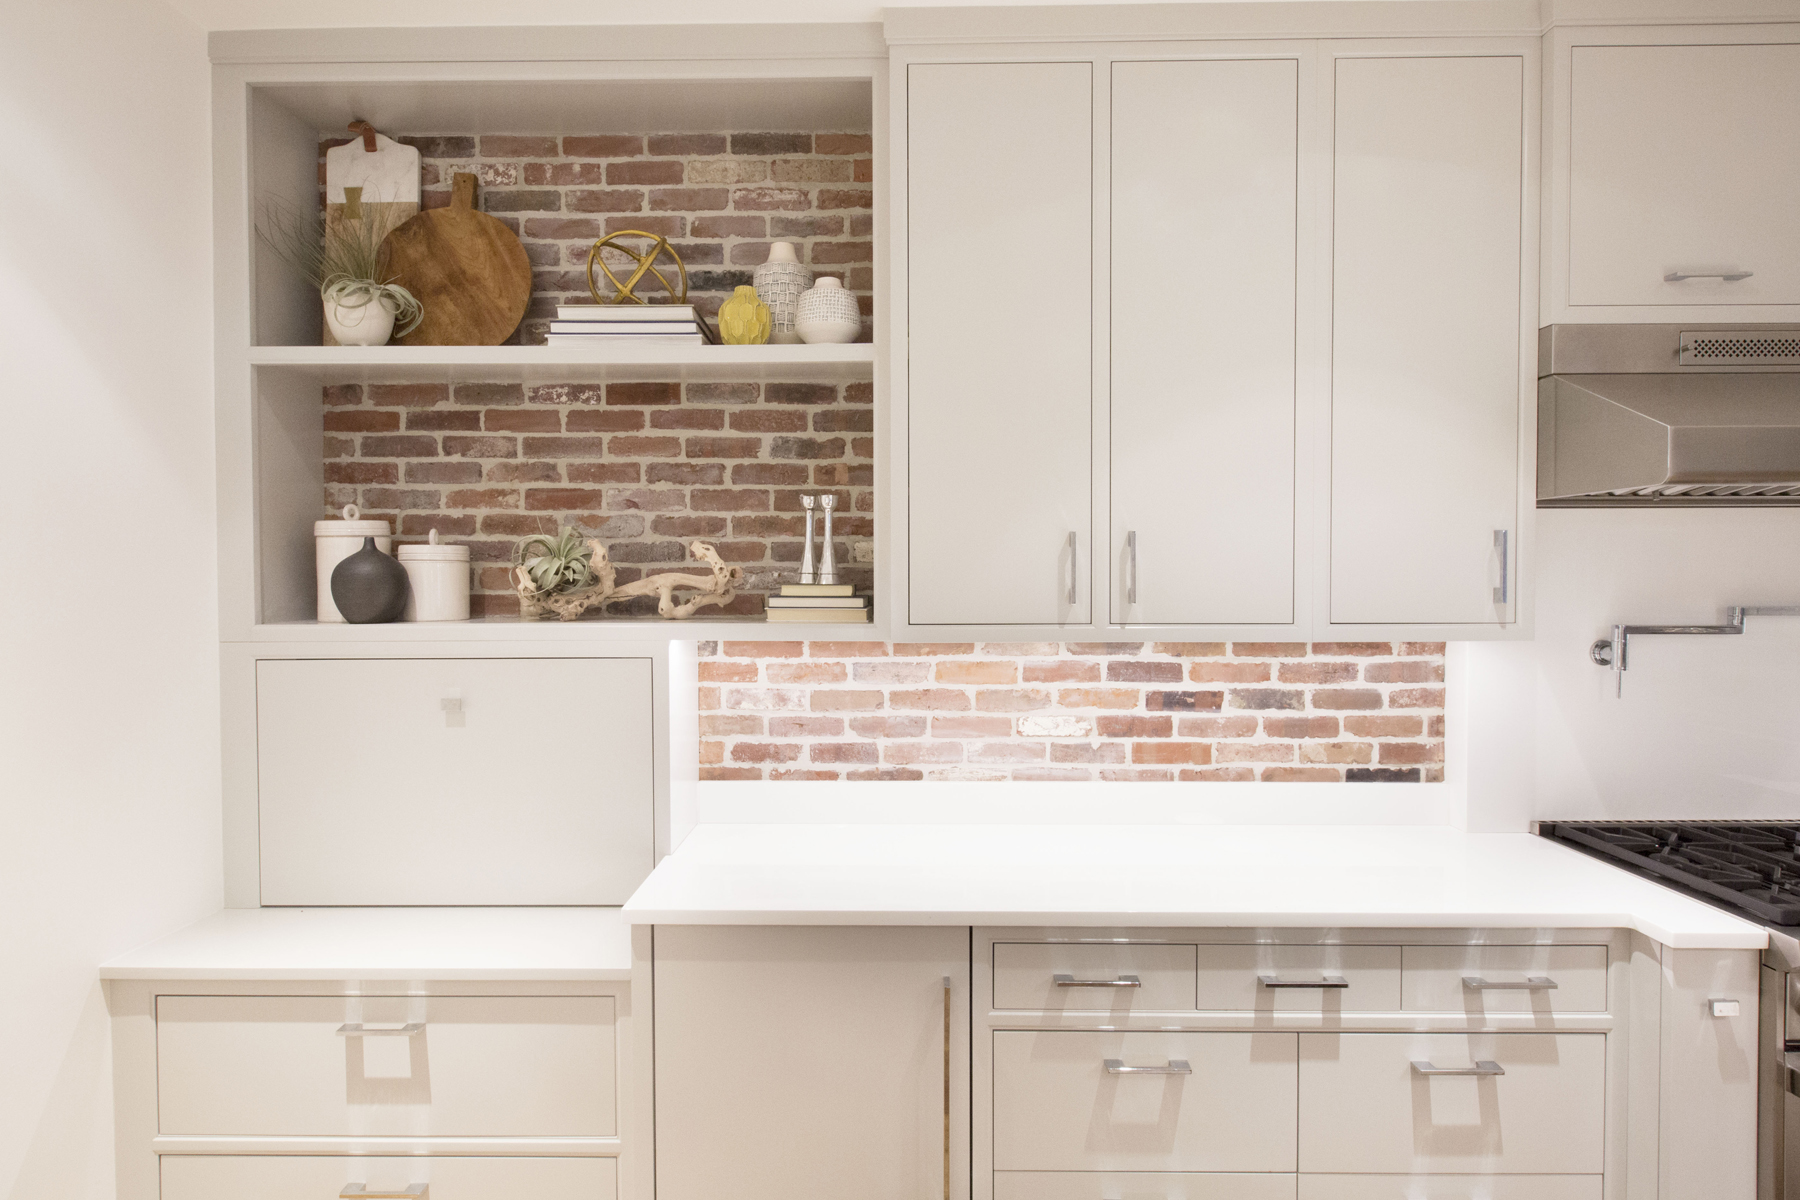 Transitional kitchen features exposed brick walls, white quartz counters, open shelving and fully custom flat panel grey painted cabinets by Bilotta and brushed stainless hardware. Design by Aston Smith of Bilotta Kitchens.